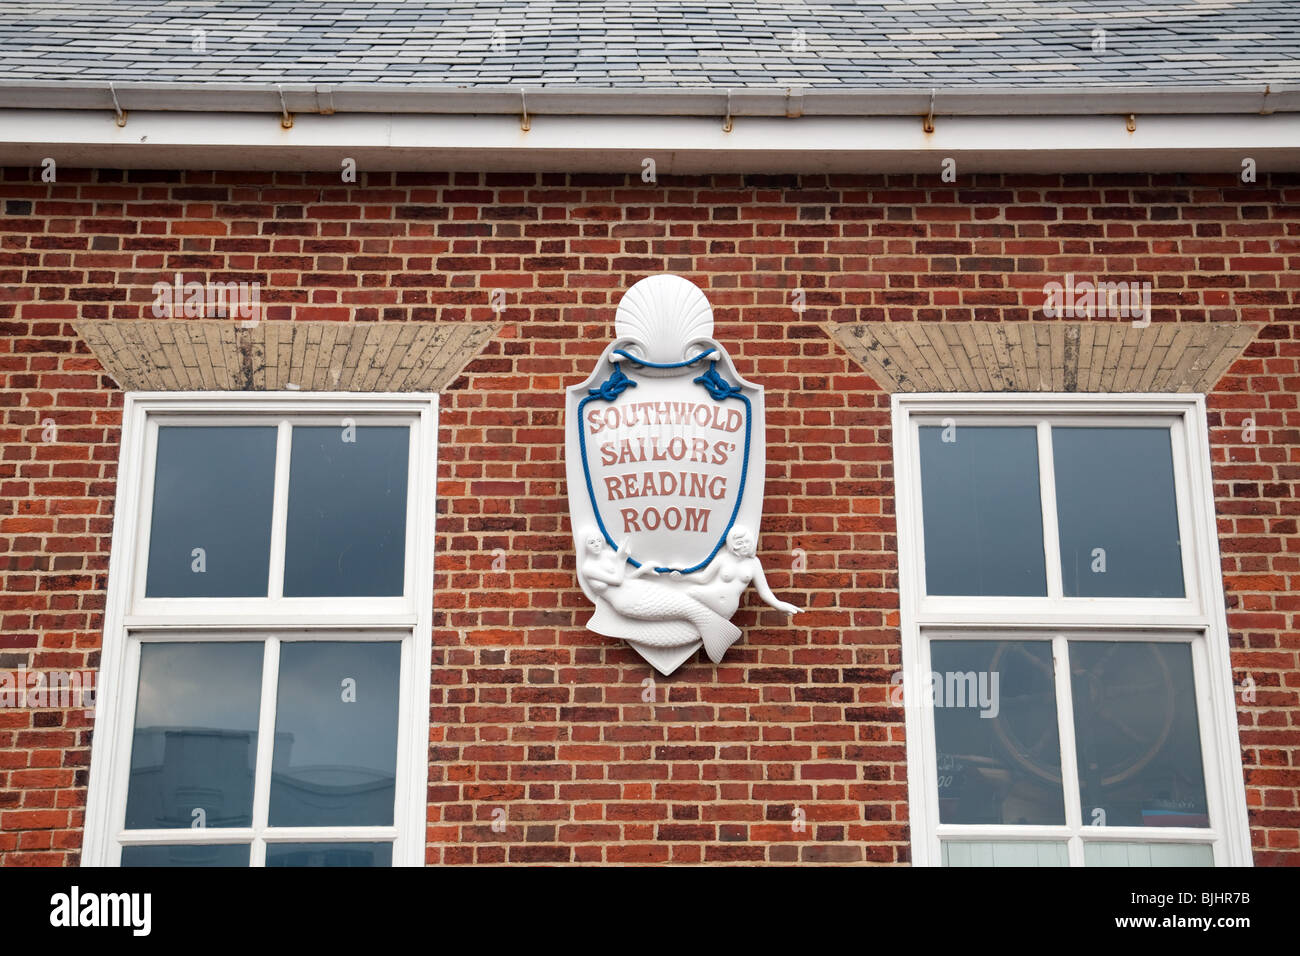 Southwold sailors reading room, Southwold, Suffolk, UK - Stock Image